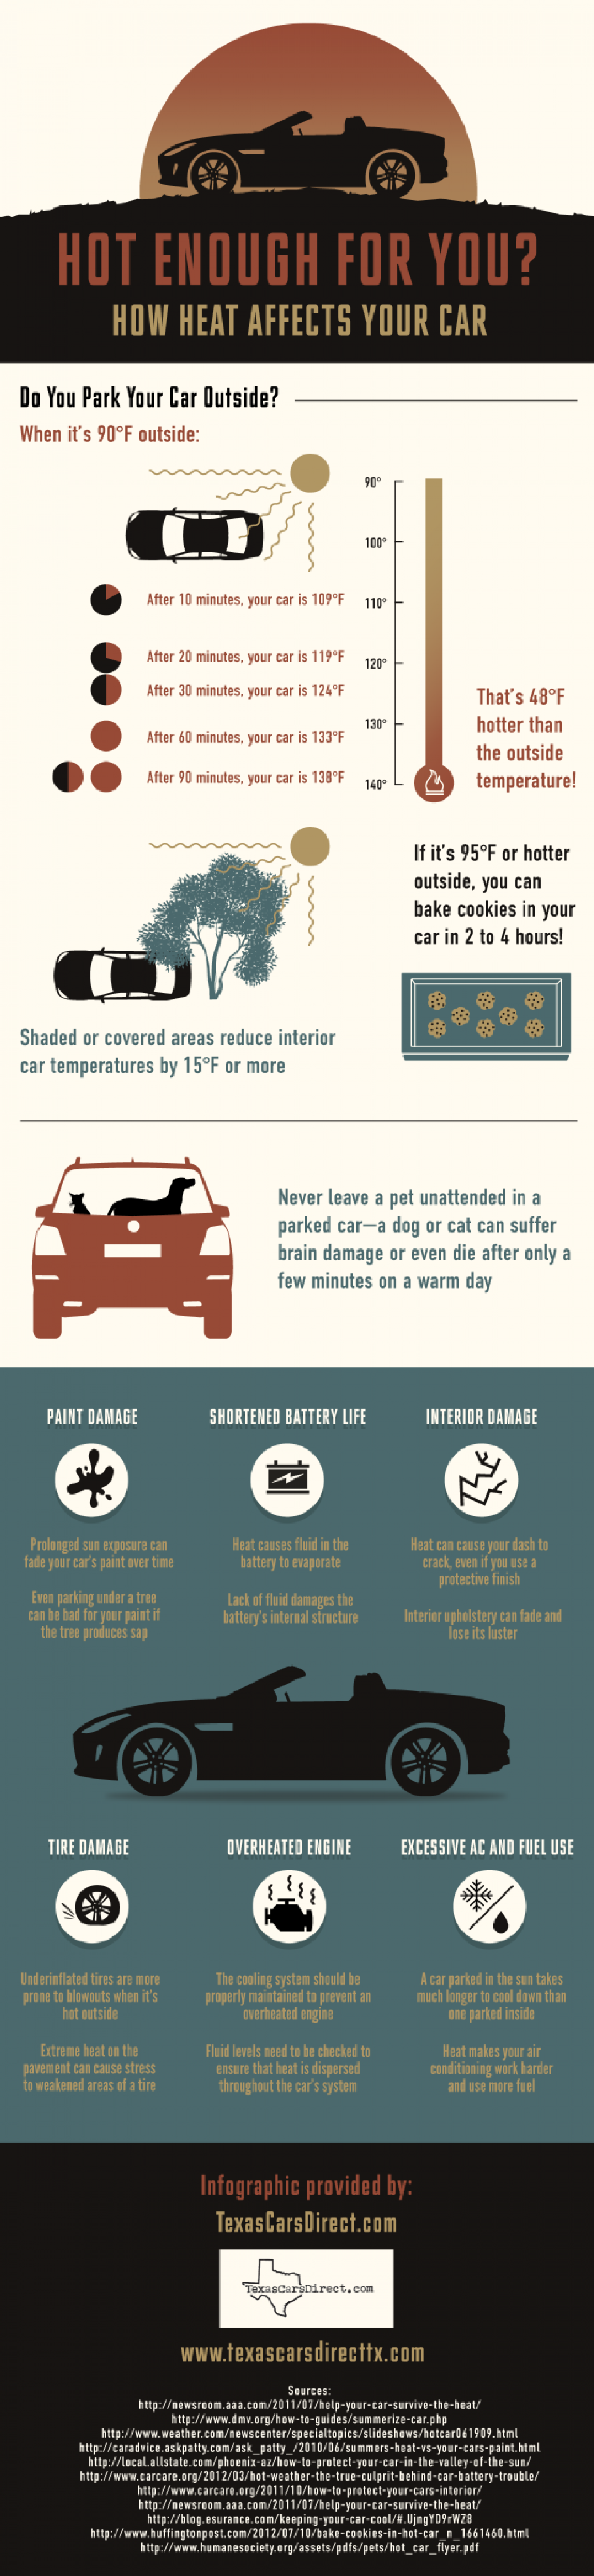 Hot Enough for You? How Heat Affects Your Car Infographic